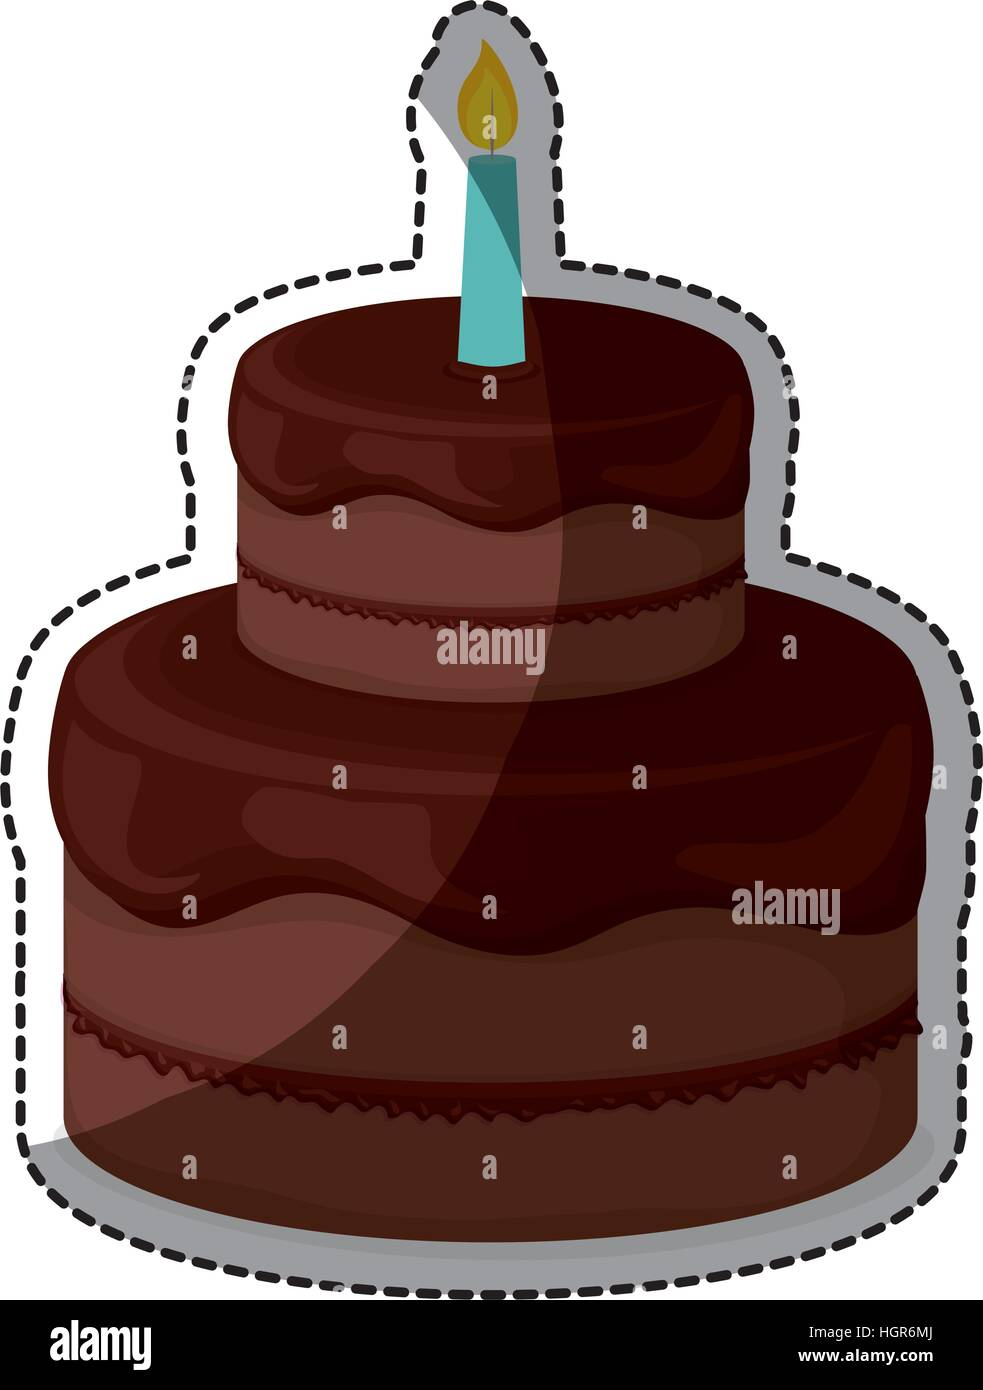 Chocolate Birthday Cake With Candles Icon Image Sticker Vector Stock